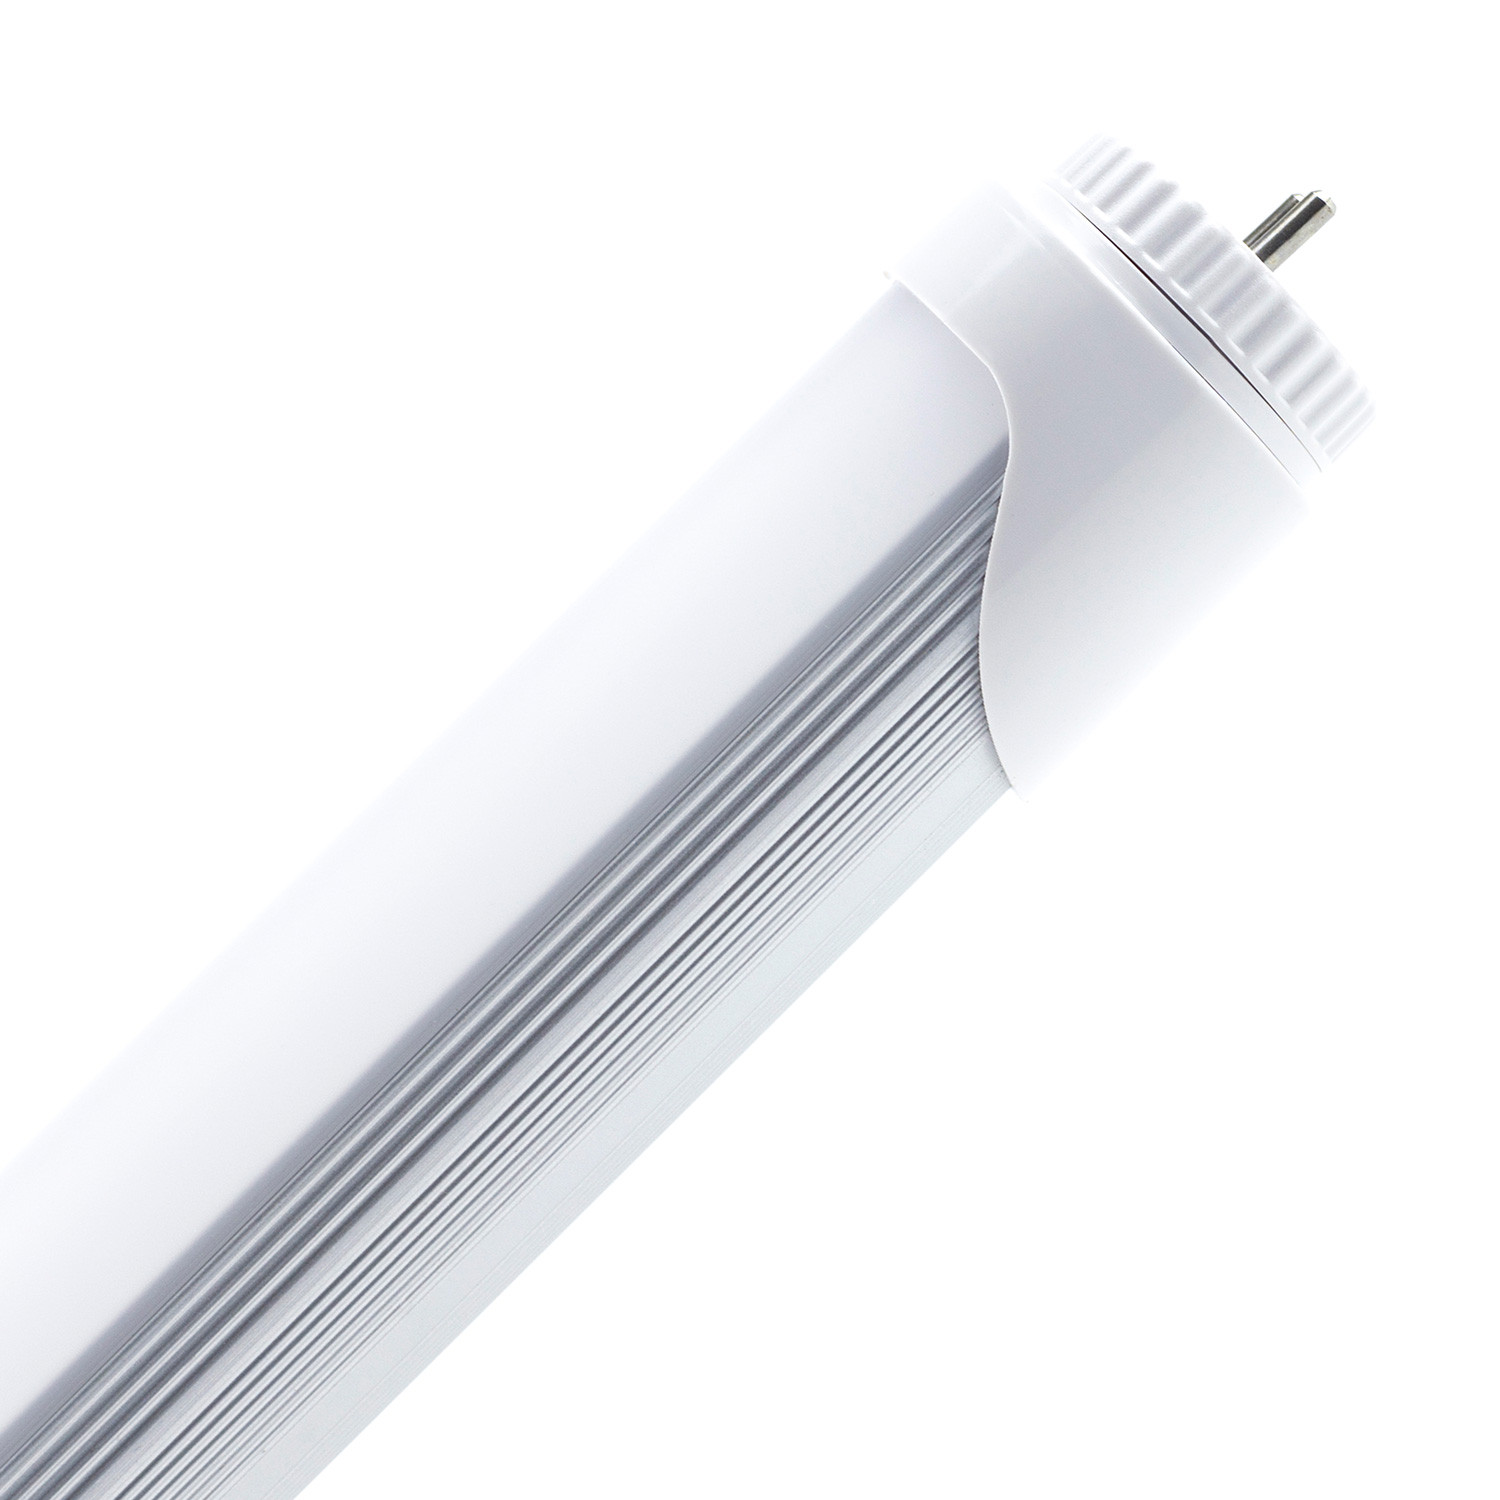 Tubo Led T8 1200mm Conexión Un Lateral 18w 120lm W Efectoled